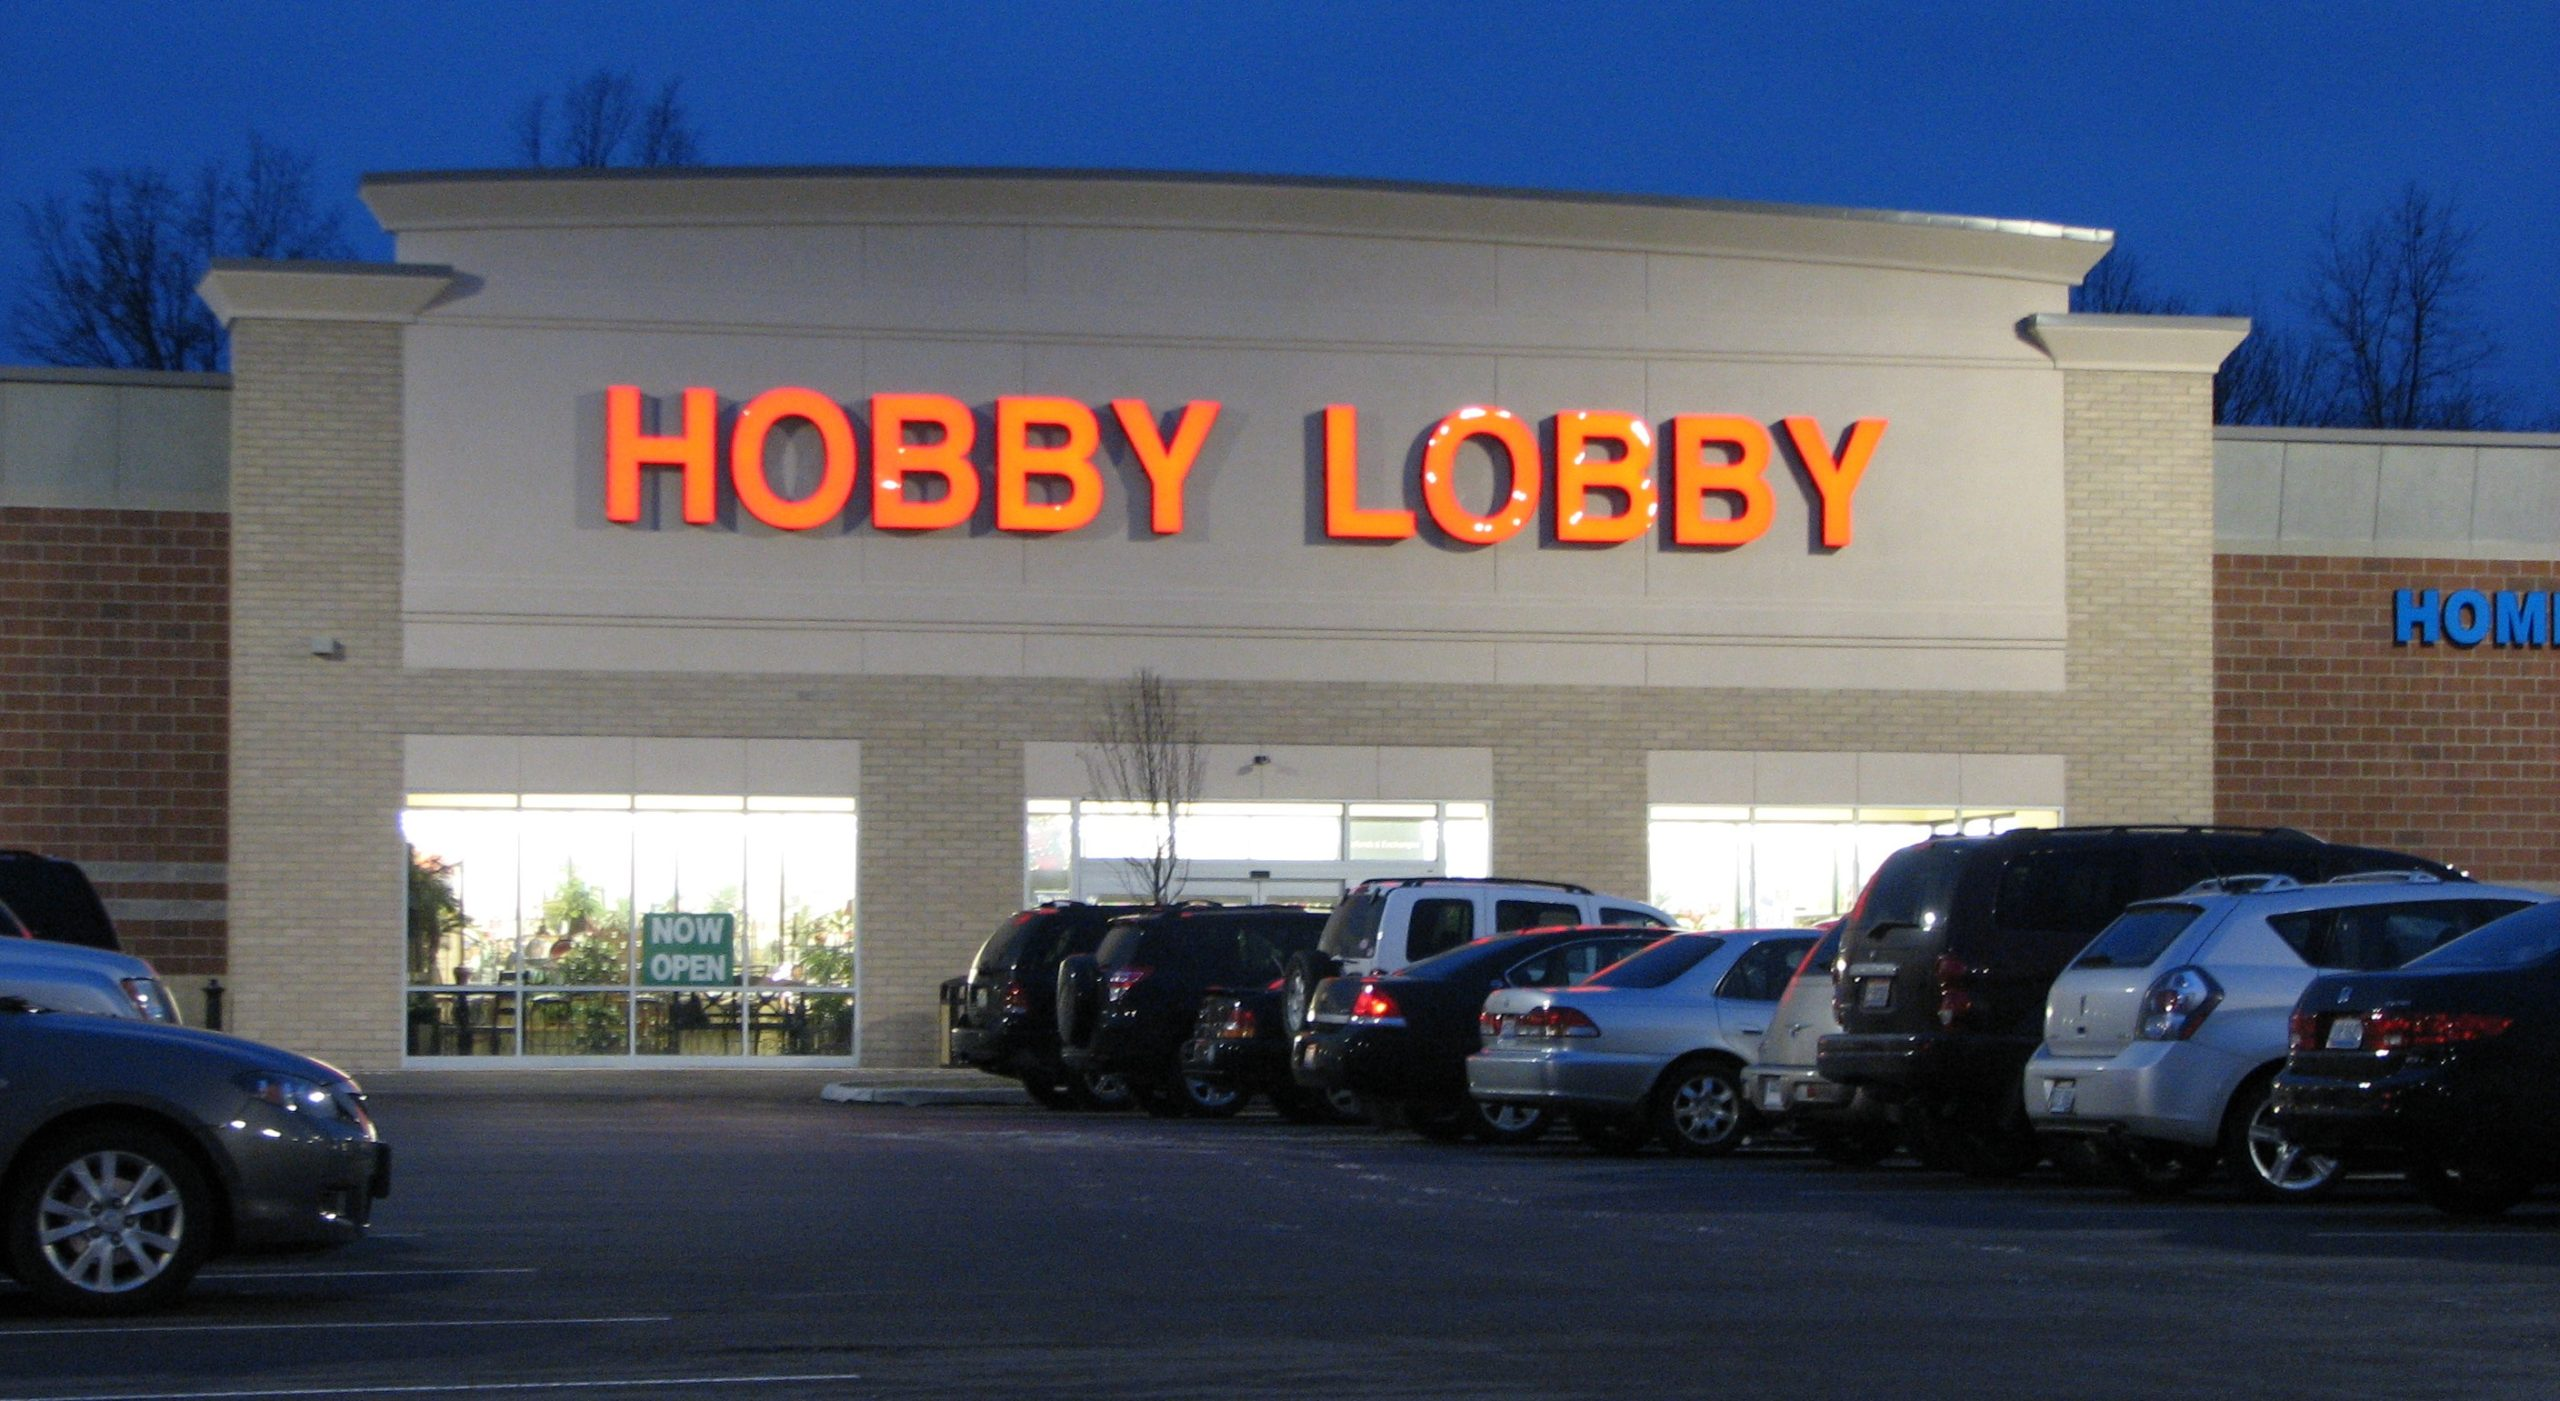 FROM MONTCO: Hobby Lobby Stores Prepares for Opening in King of Prussia